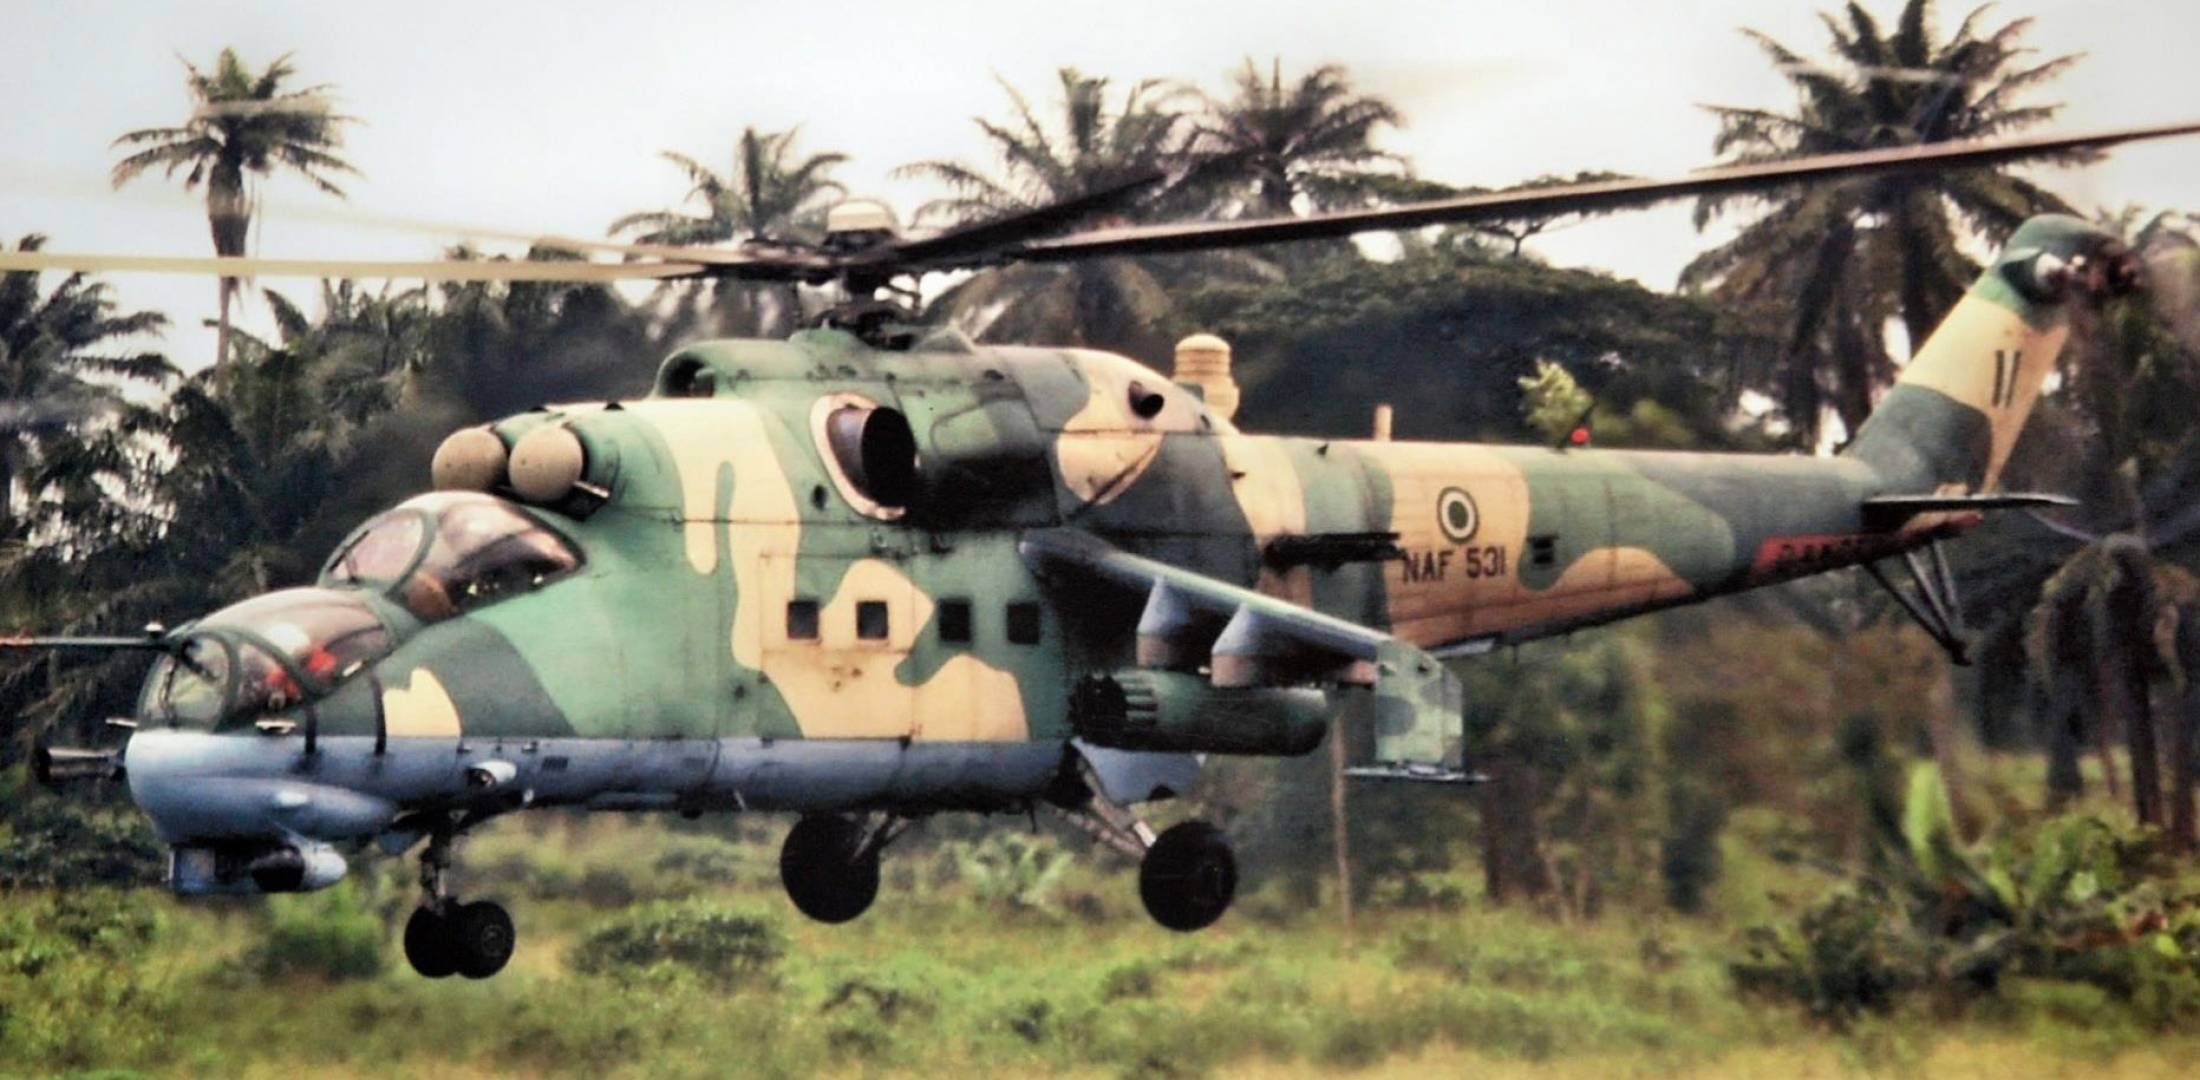 helicopter flight services with Nigerian Air Force Orders More Russian Helicopters on Helicopter besides H160 204 additionally Airplane takeoff 3d 744075 likewise Robinson R44 together with Tiger 51.